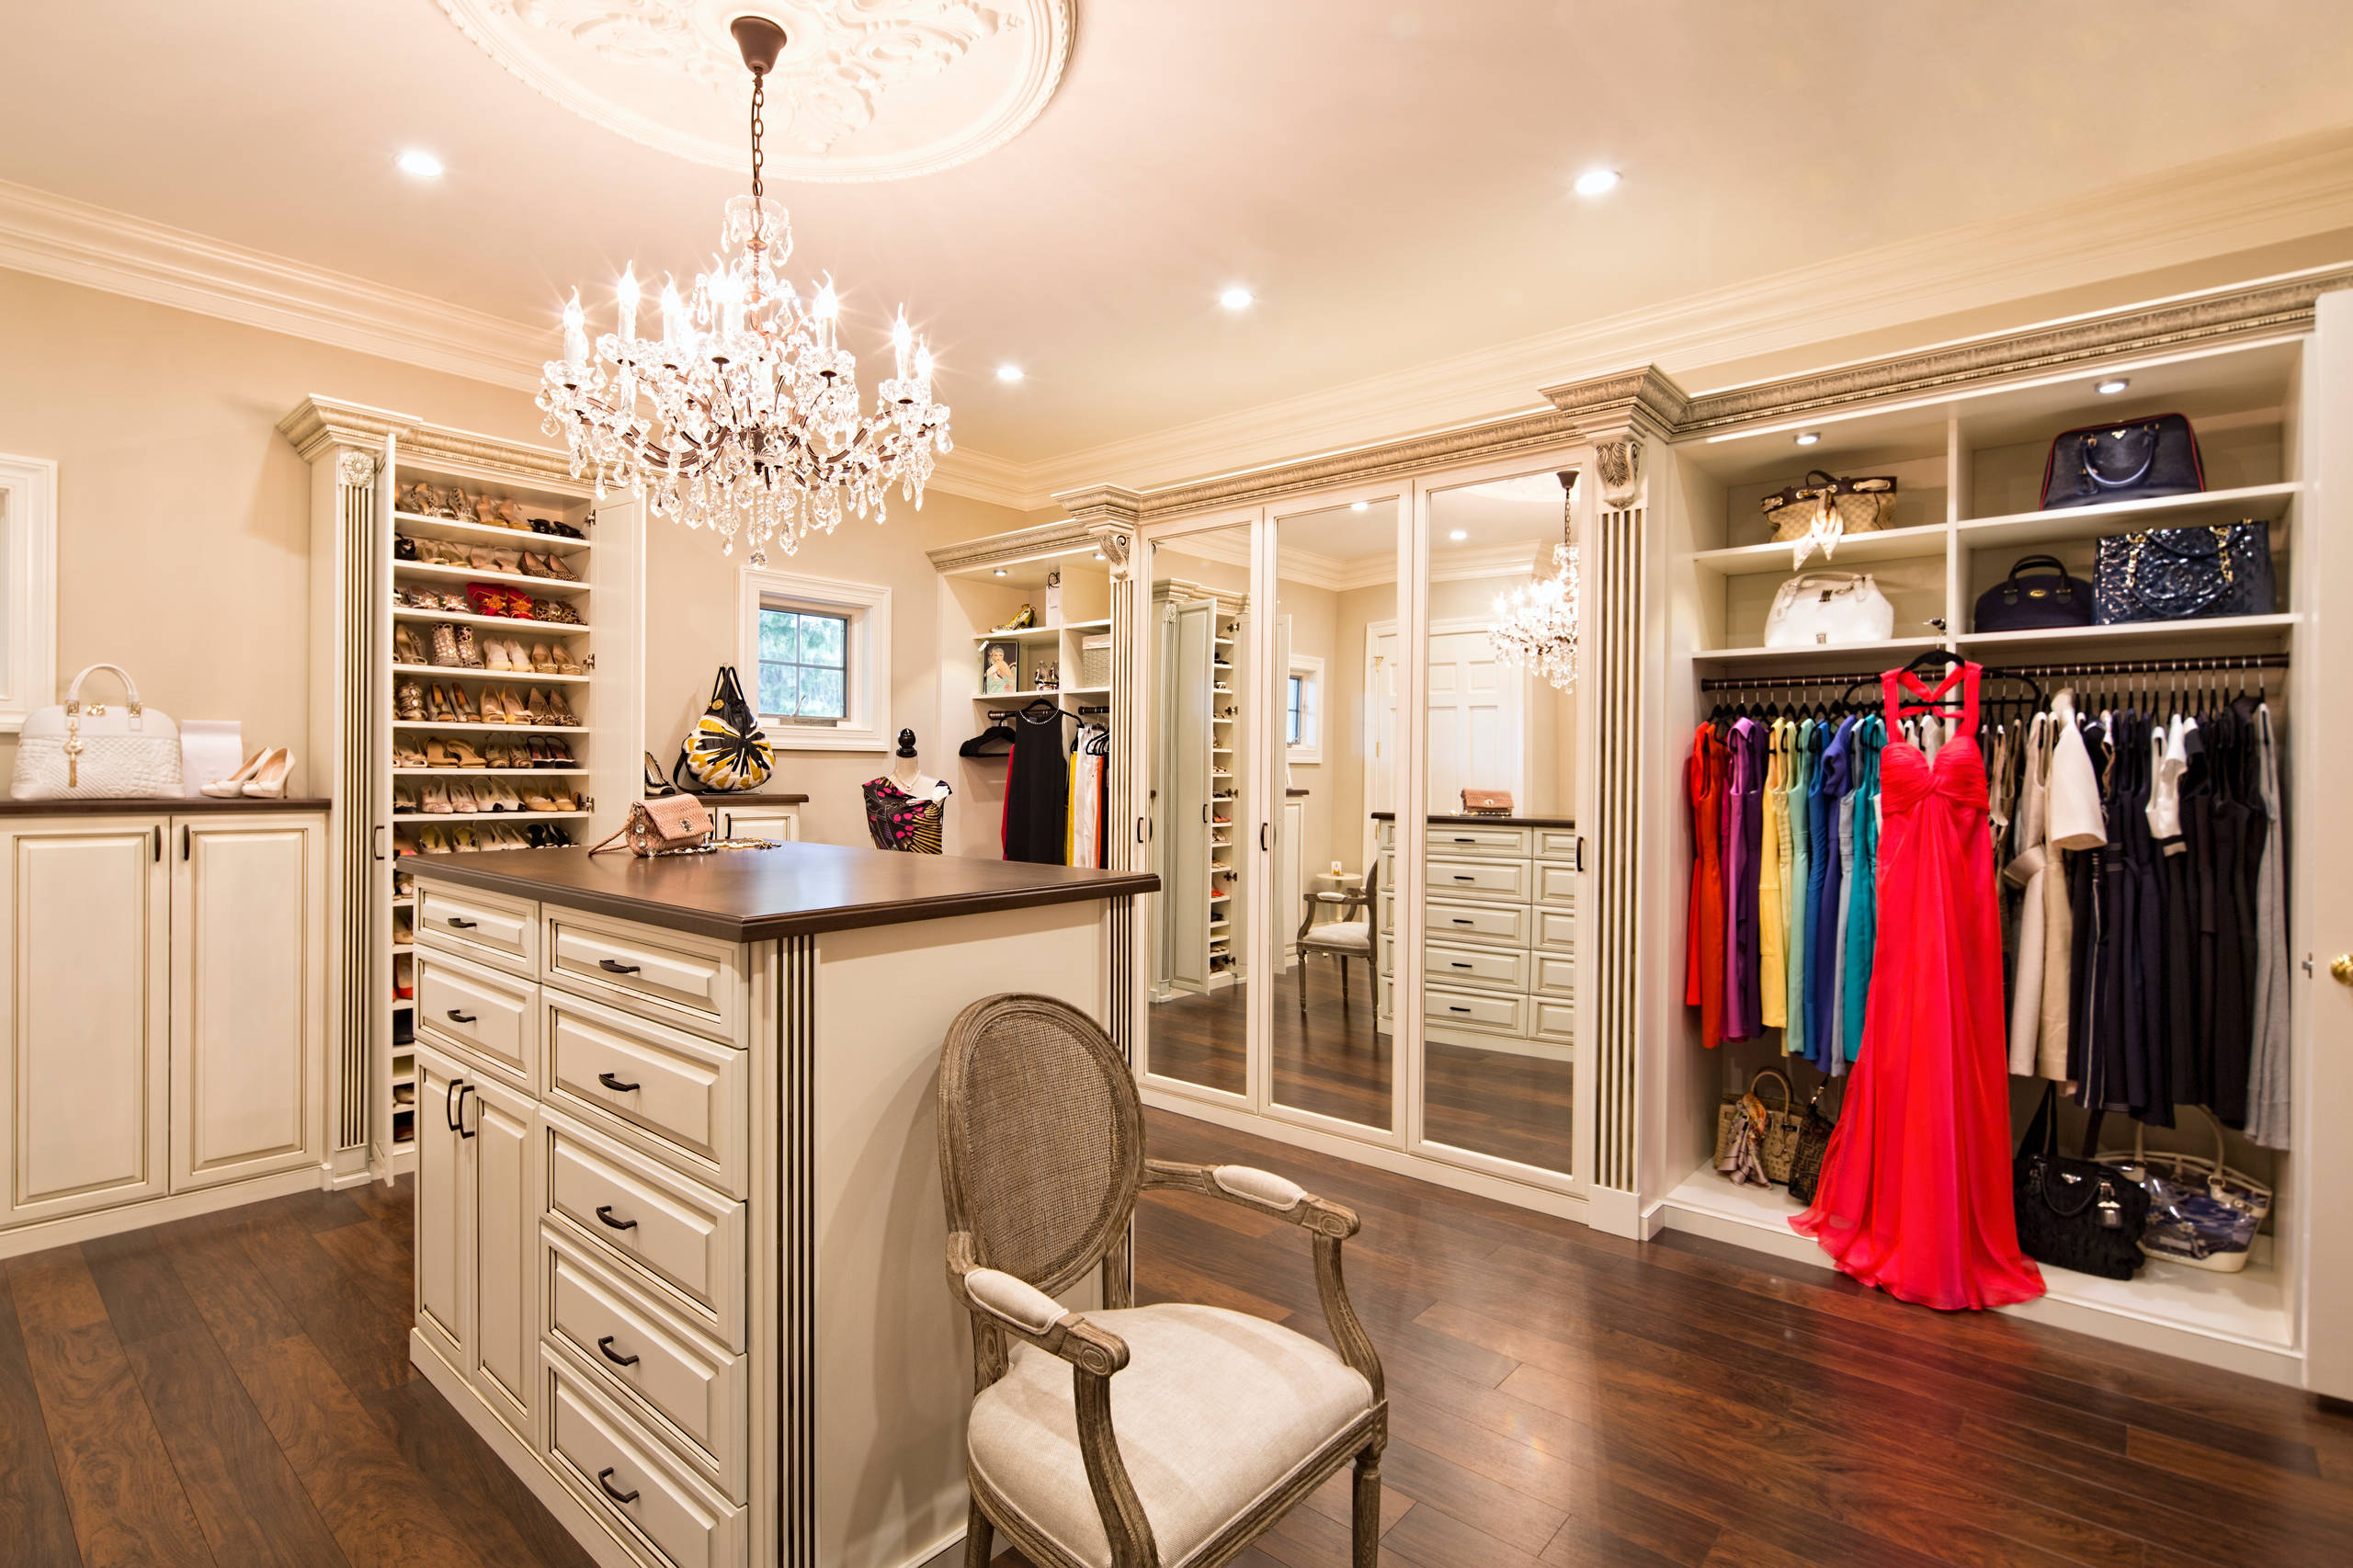 chand closet - 5 Ways to Walk into Glamour